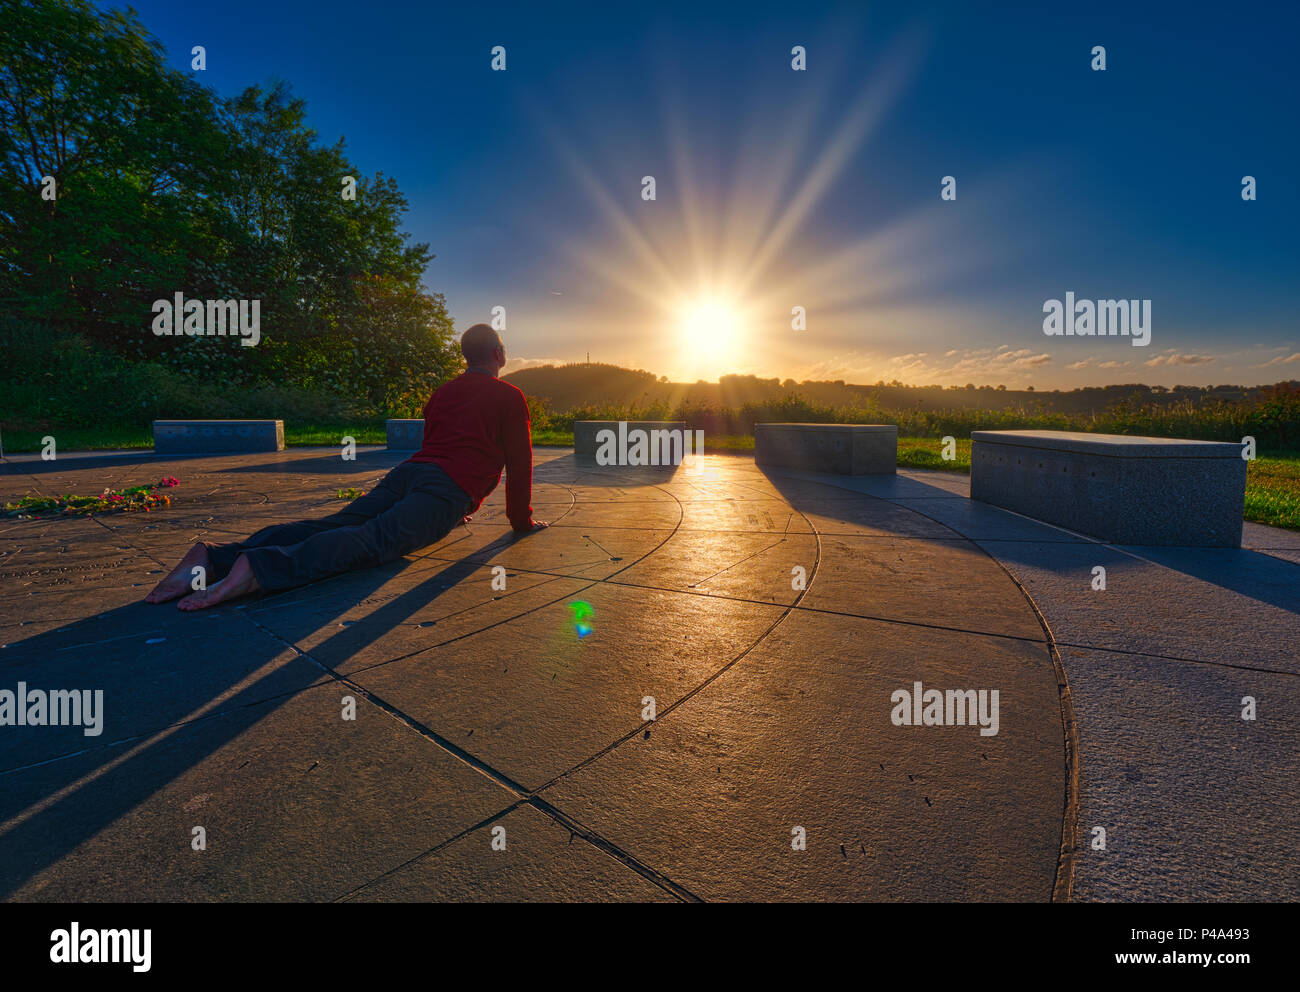 Wirksworth, Derbyshire, UK. 21st June, 2018. International World Yoga Day saluting the sun rising on the summer estival solstice at the star disc above Wirksworth in the Derbyshire Dales Credit: Doug Blane/Alamy Live News - Stock Image